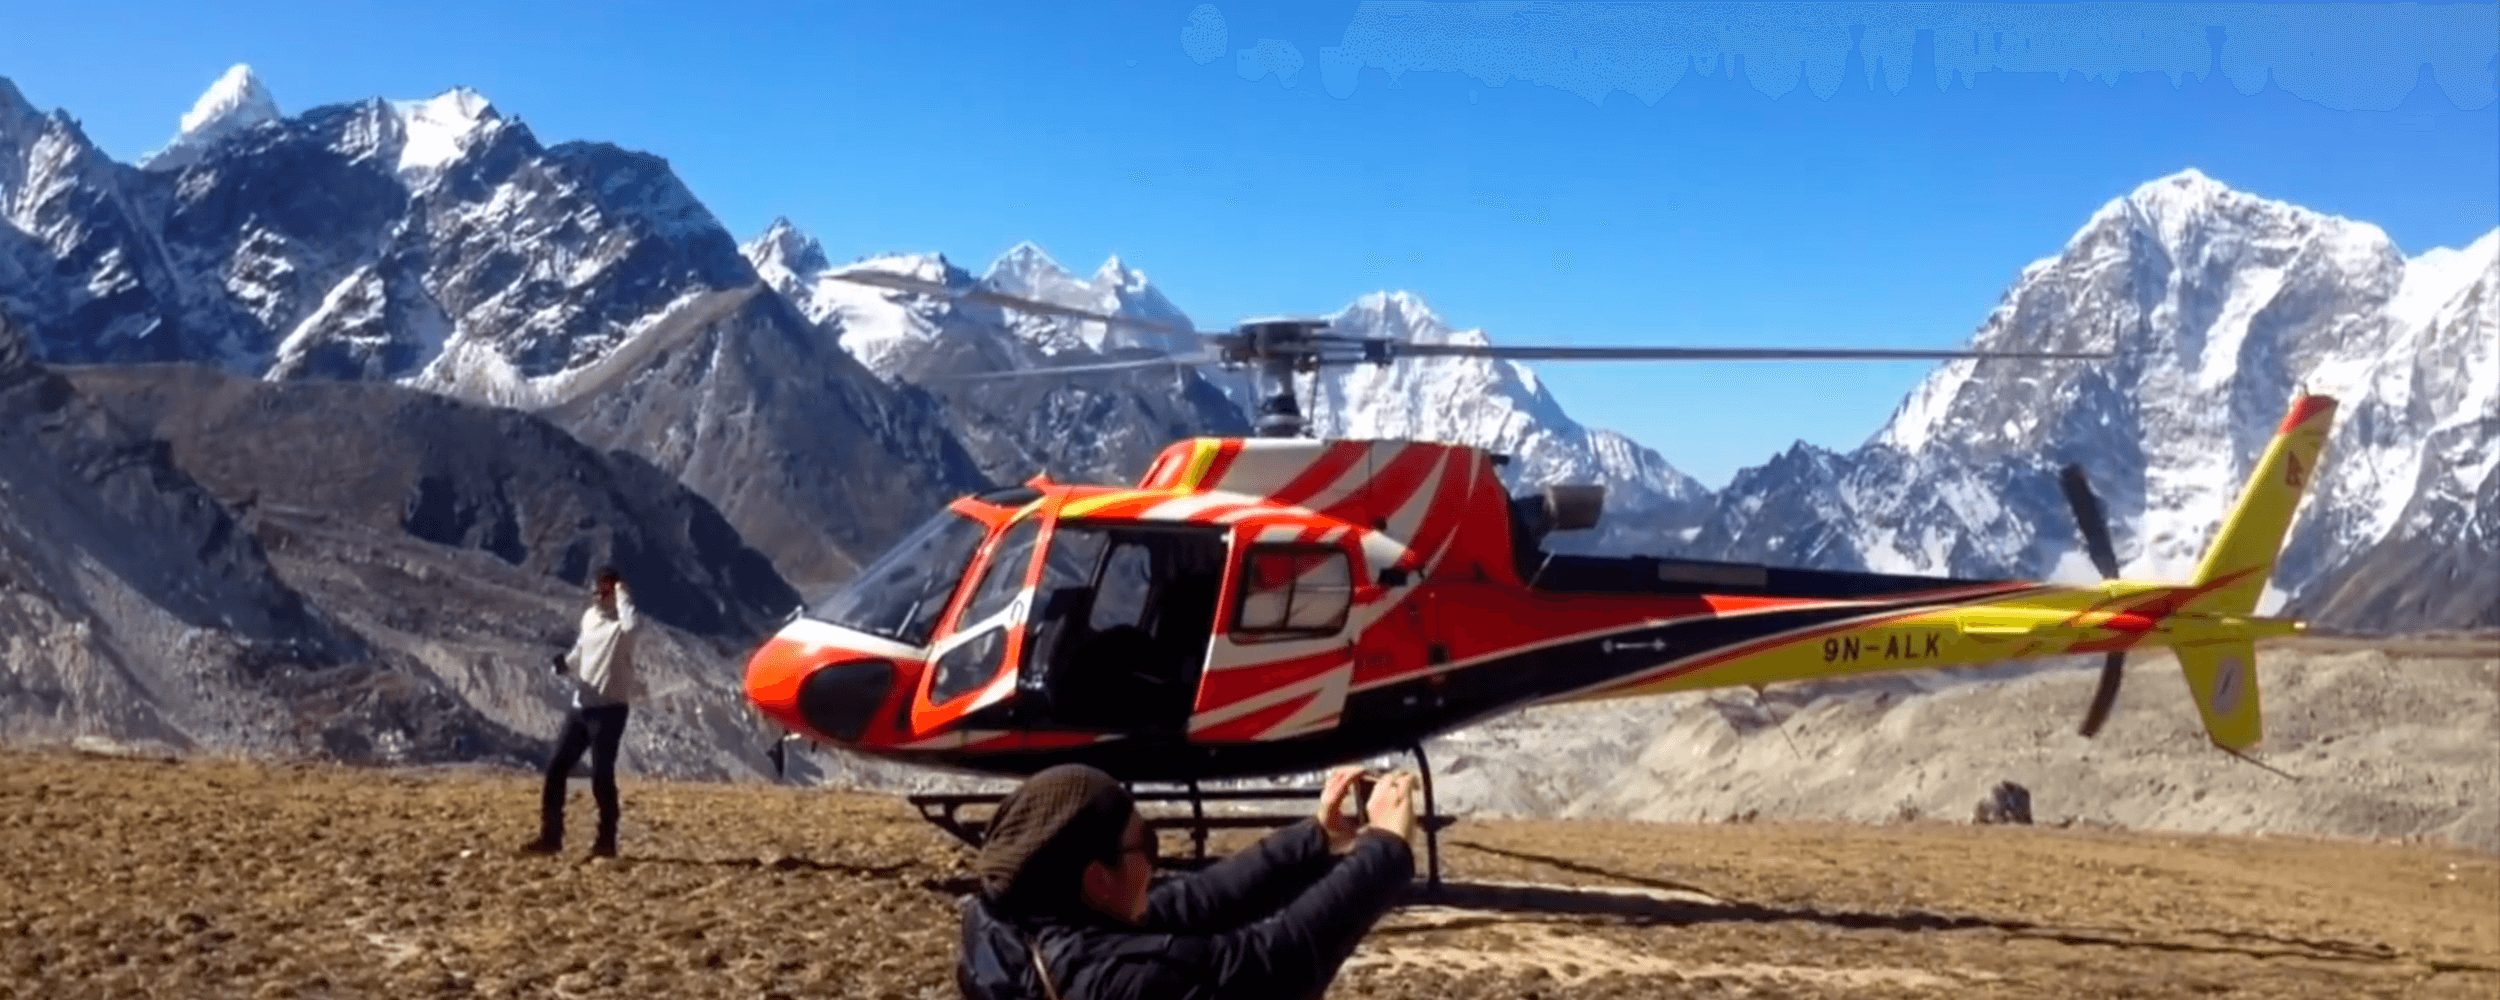 Everest Base camp Helicopter landing tour